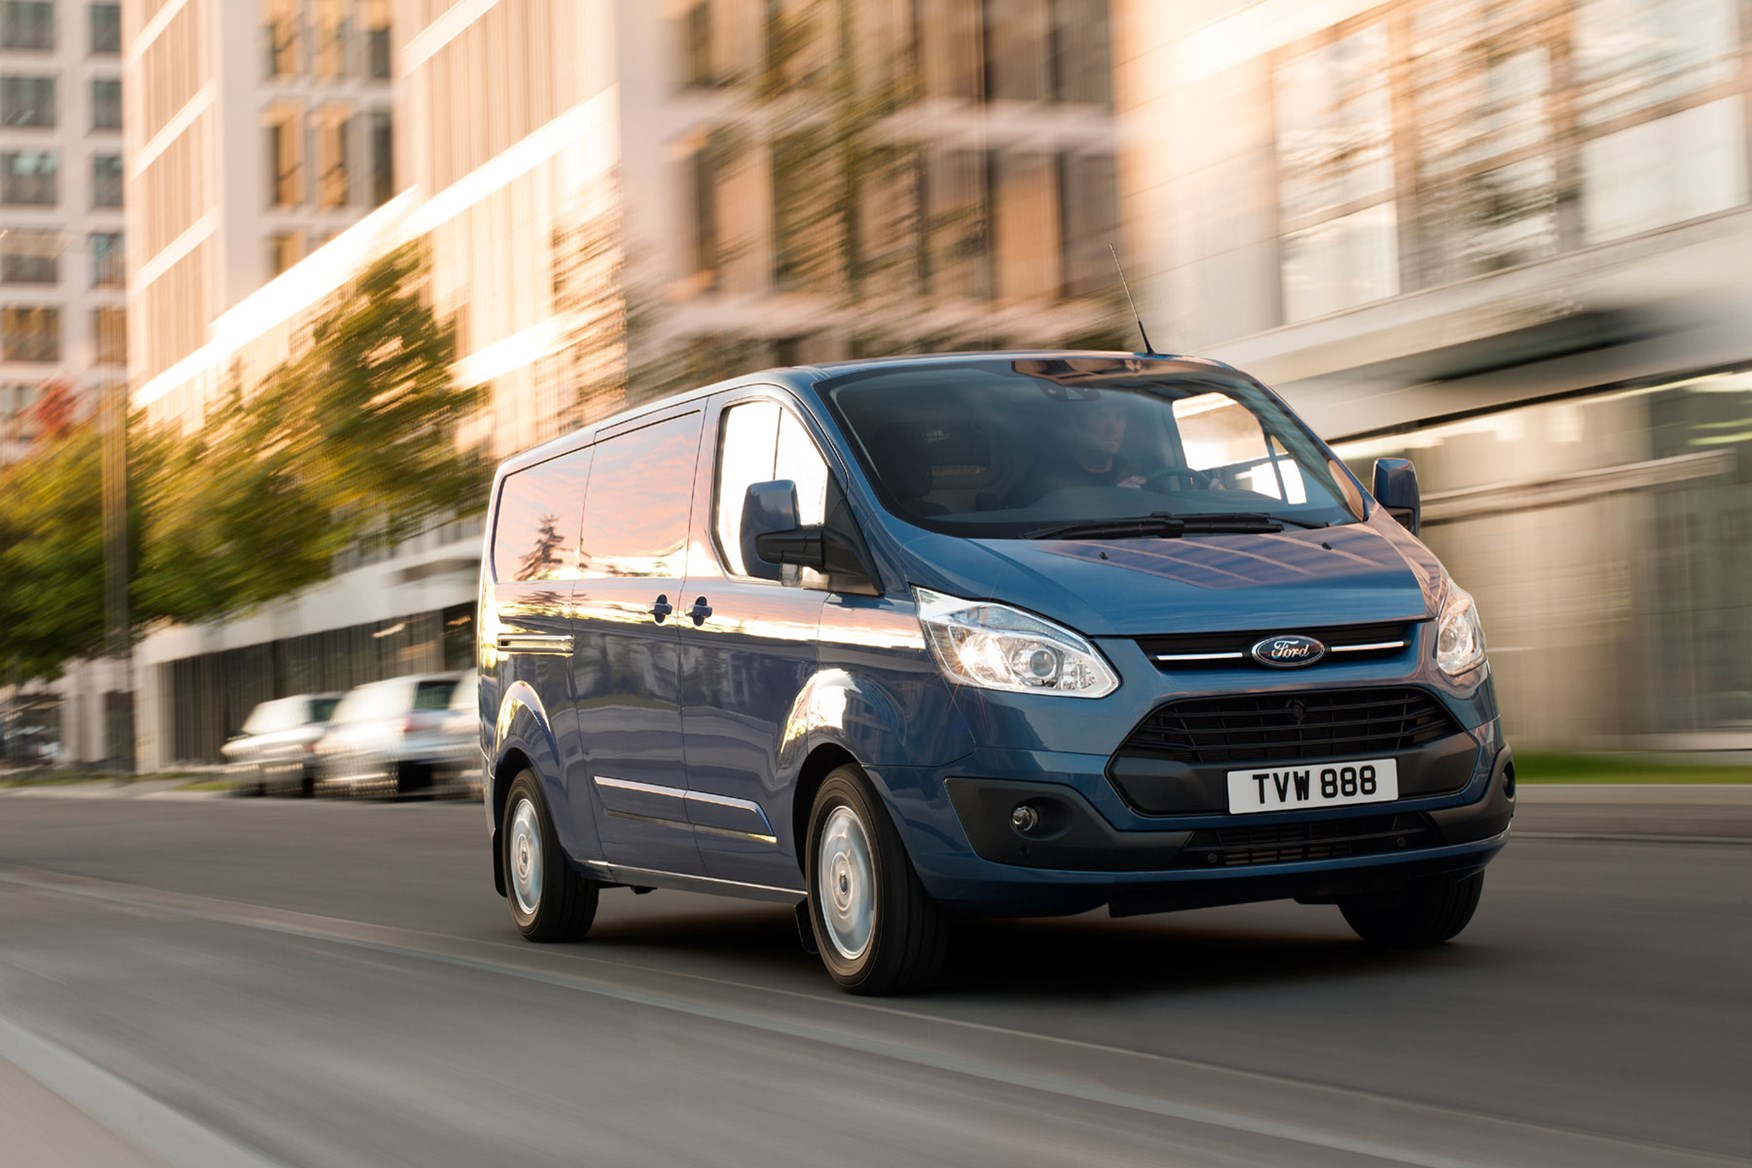 Ford Transit Custom review - 2012 pre-facelift front view driving